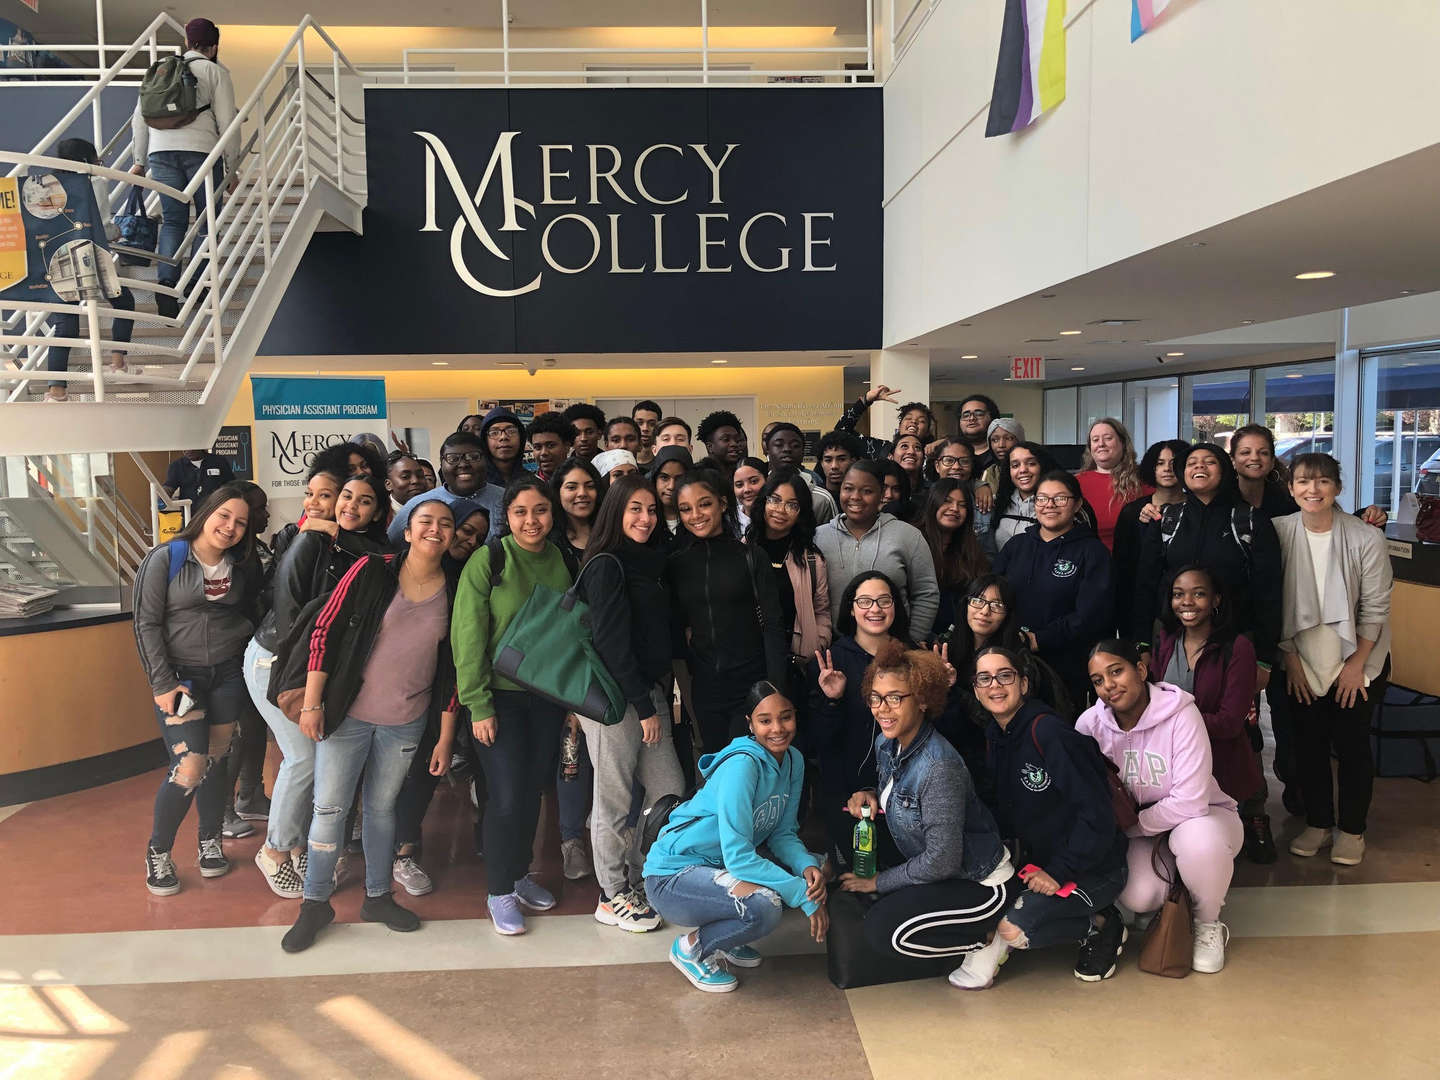 Field trip to Mercy College